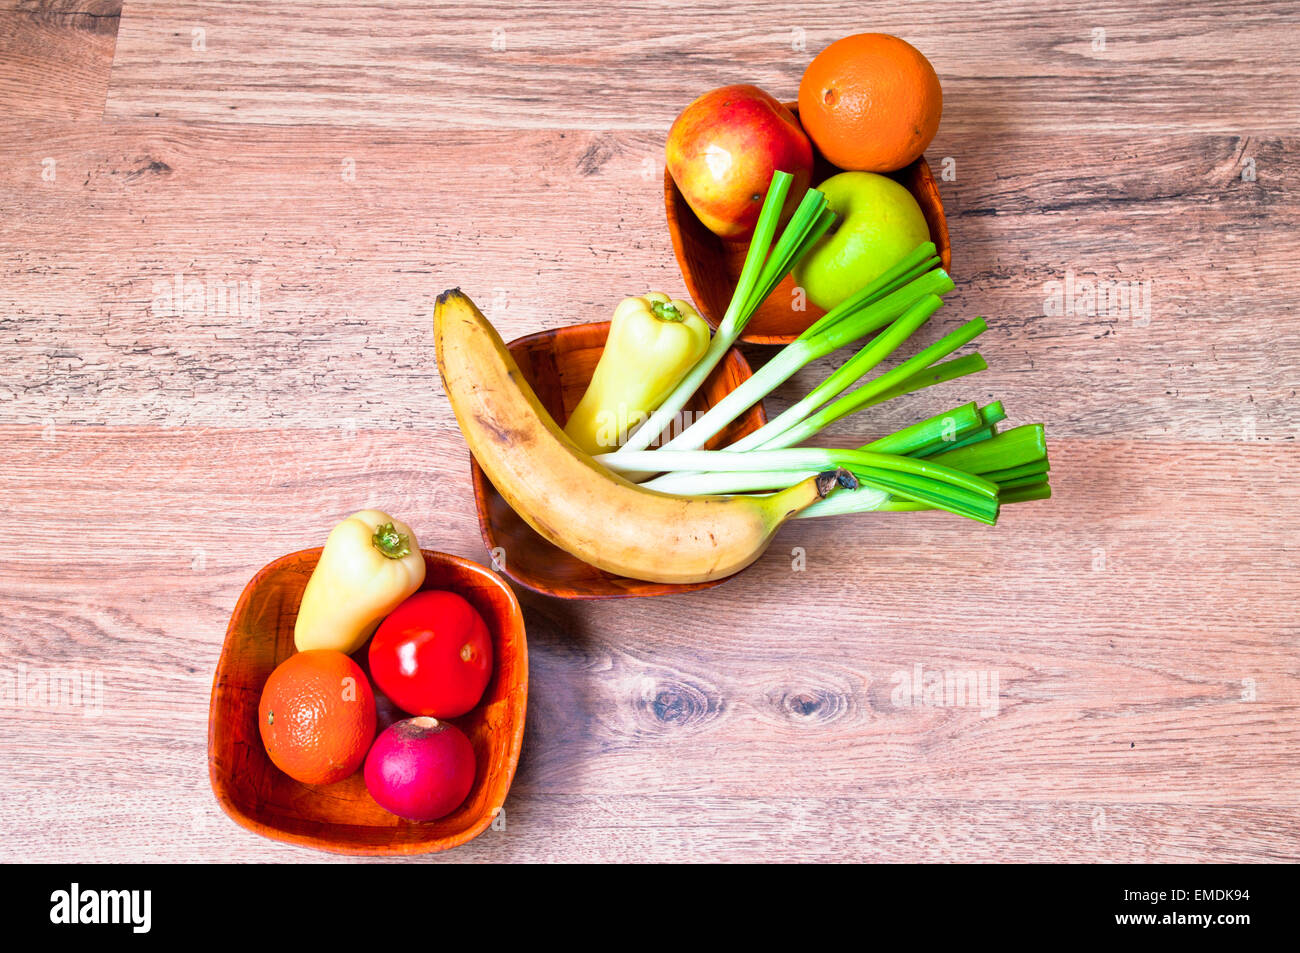 vegetables; food; fruits; fruit; healthy; fresh; background; market; organic; vegetable; table; wooden; green; wood; Stock Photo